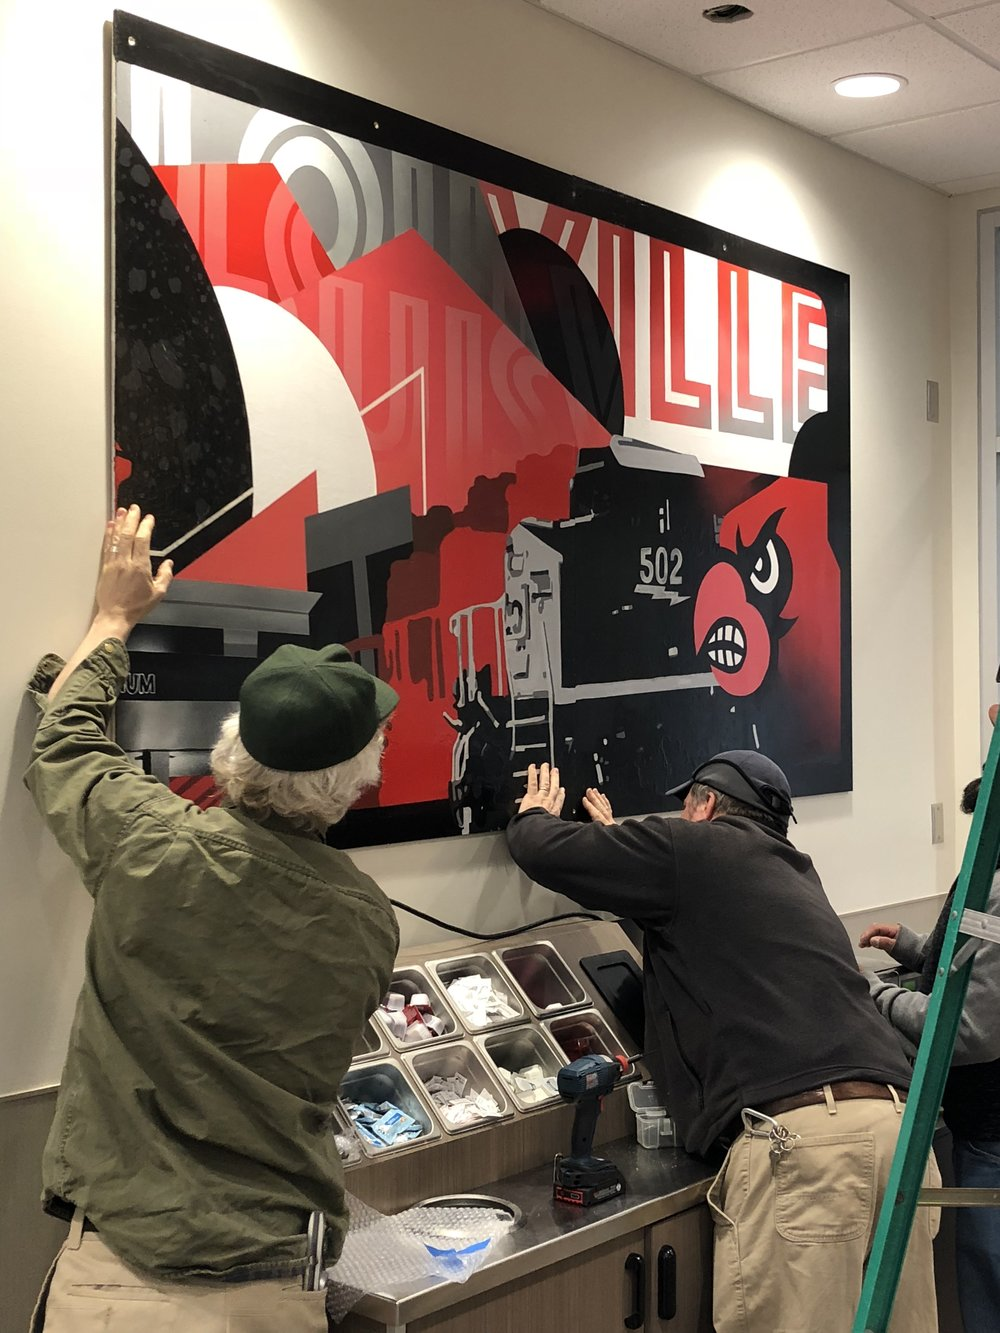 Another Kroger mural has gone up! Our neighbors  @oftenseenrarelyspoken  did a great job on this, now visible at the University of Louisville location by Churchill Downs!